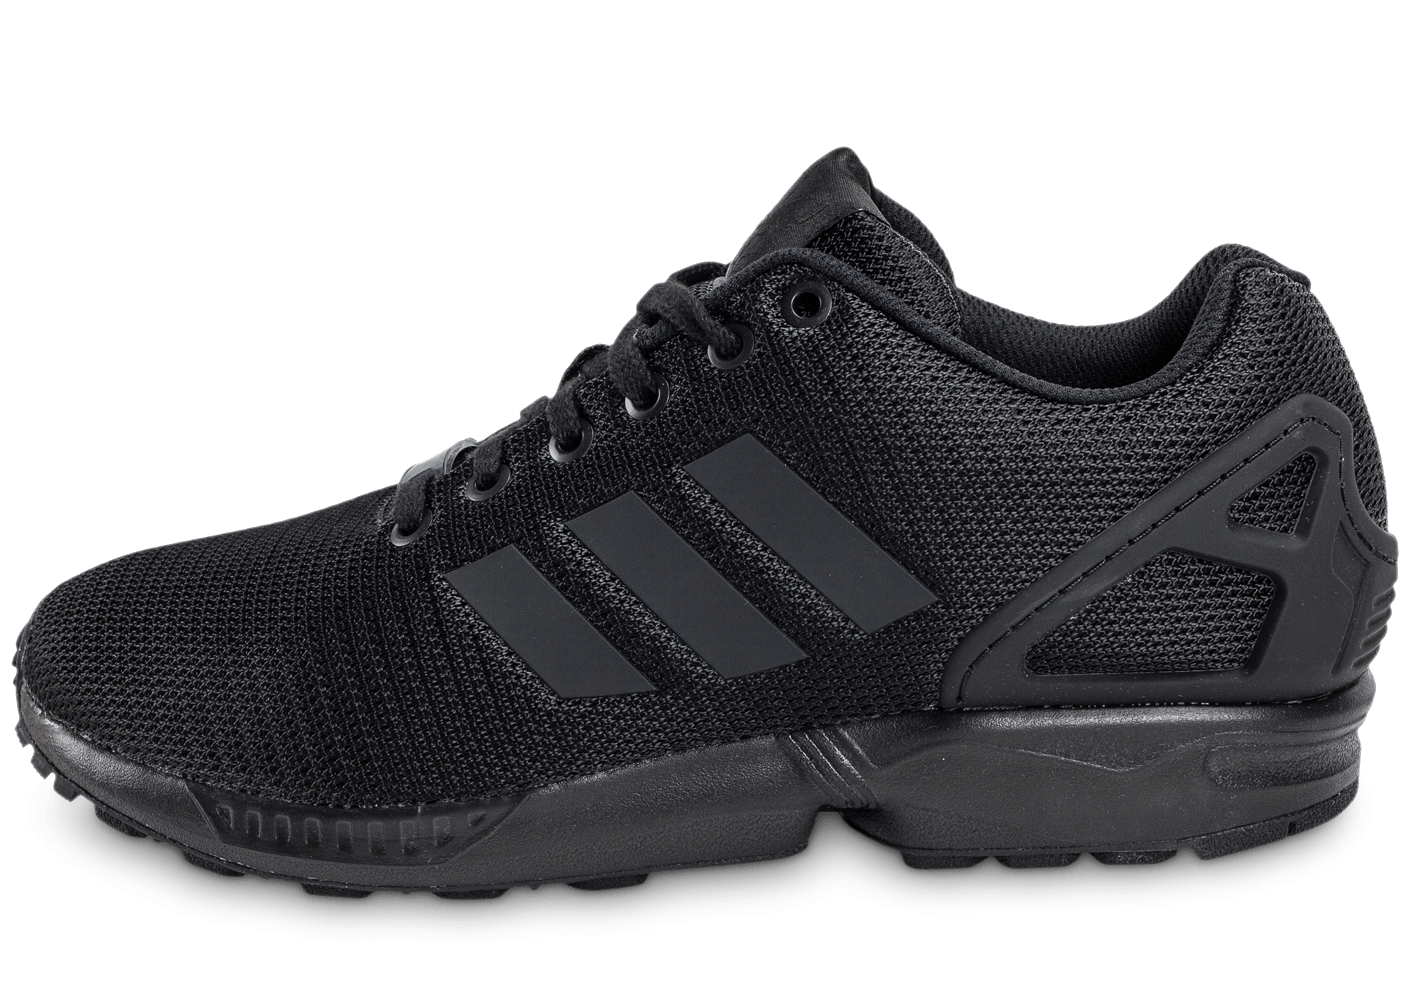 adidas chaussures zx,